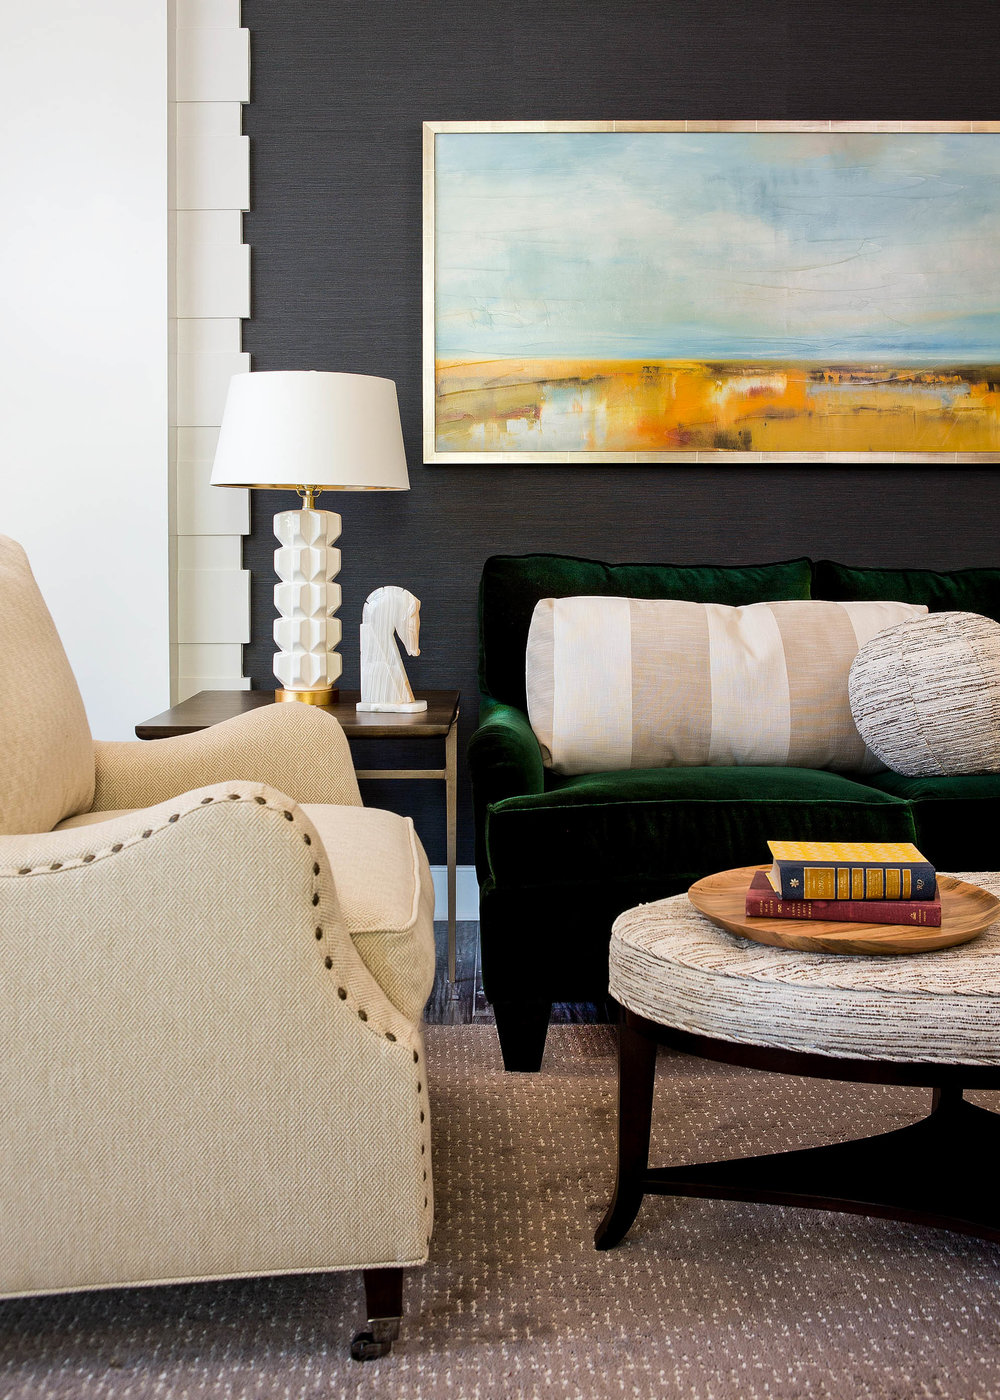 Have confidence in your furniture purchase by working with our design educated and experienced furniture salespeople. Choose from quality designer furnishings and customize the furniture to fit your room. Good furniture should last more than 20 years. By heirloom quality furniture at MakeNest Interiors.